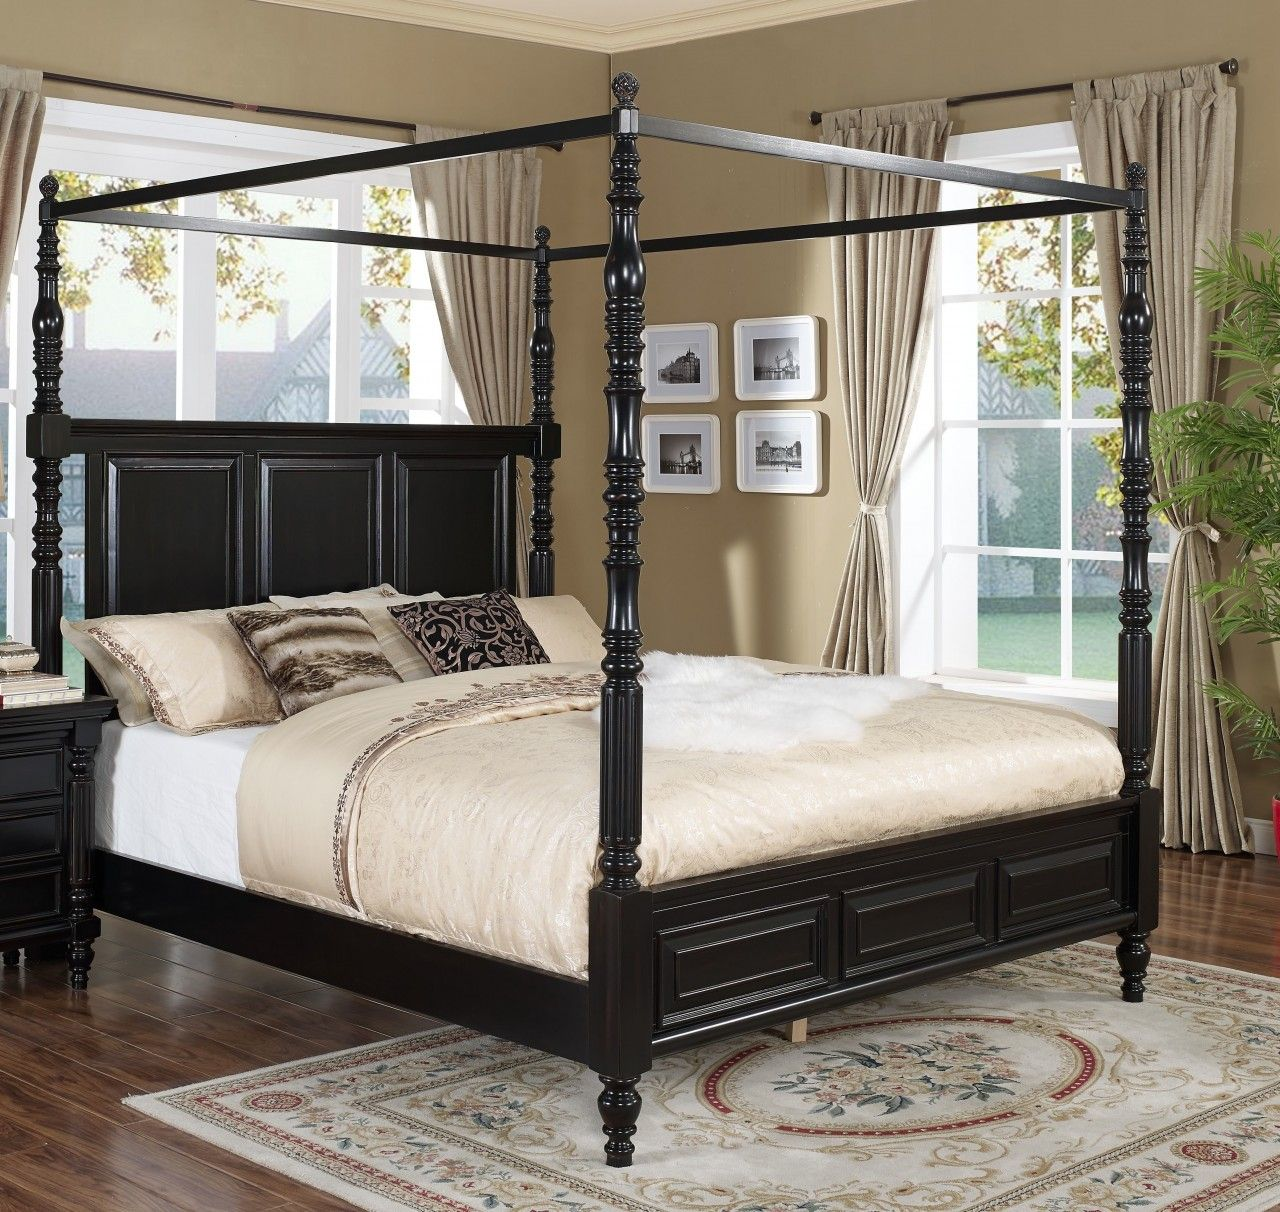 New Classic Martinique Queen Canopy Bed With Drapes In Rubbed Black 00 222 311q Want